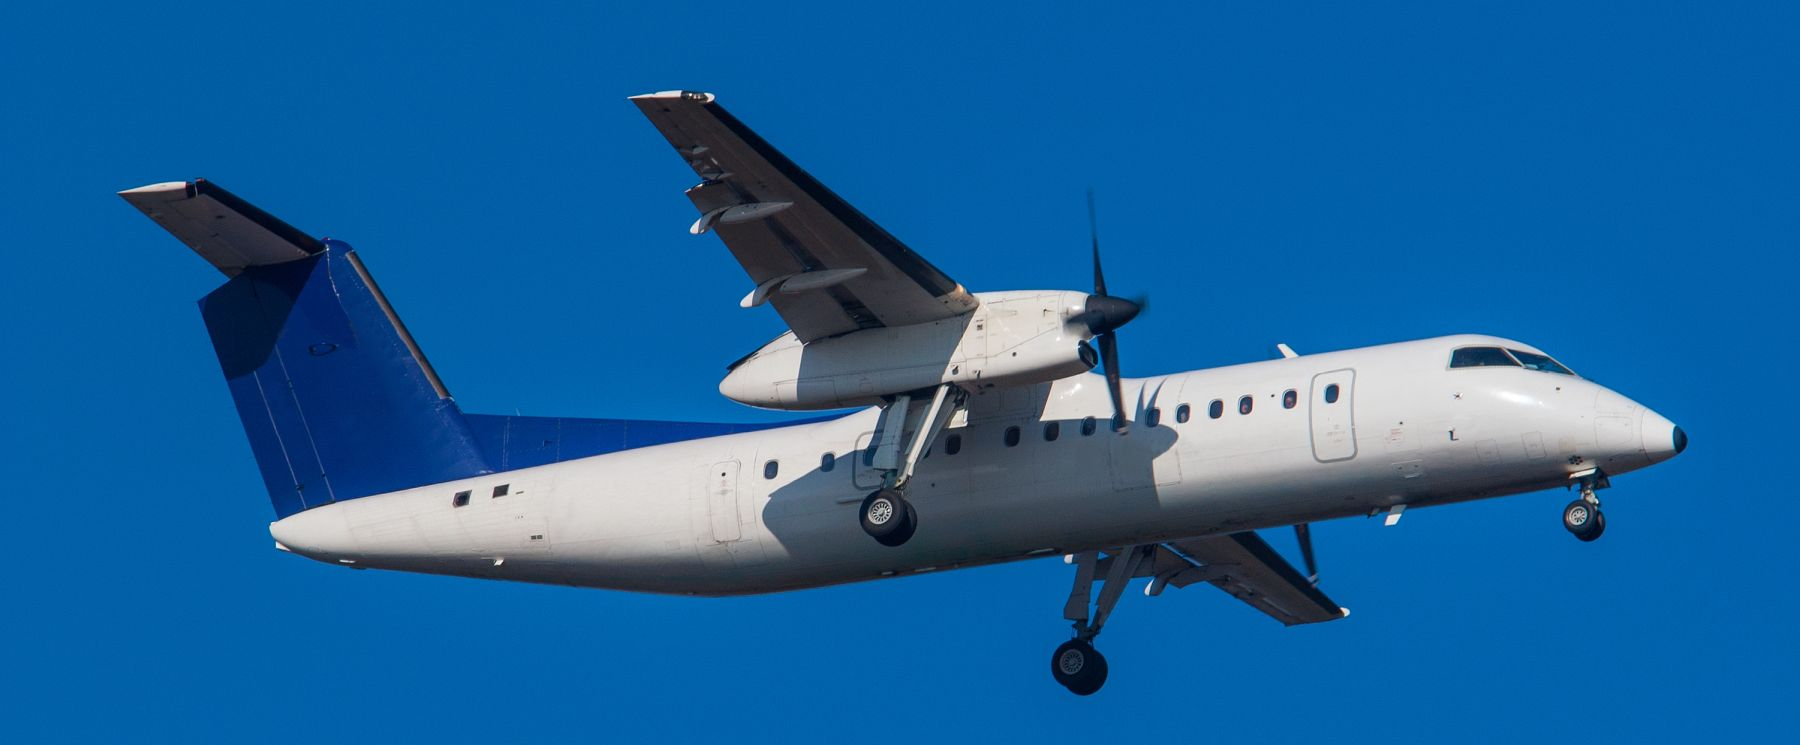 a dash 8 flying in the sky